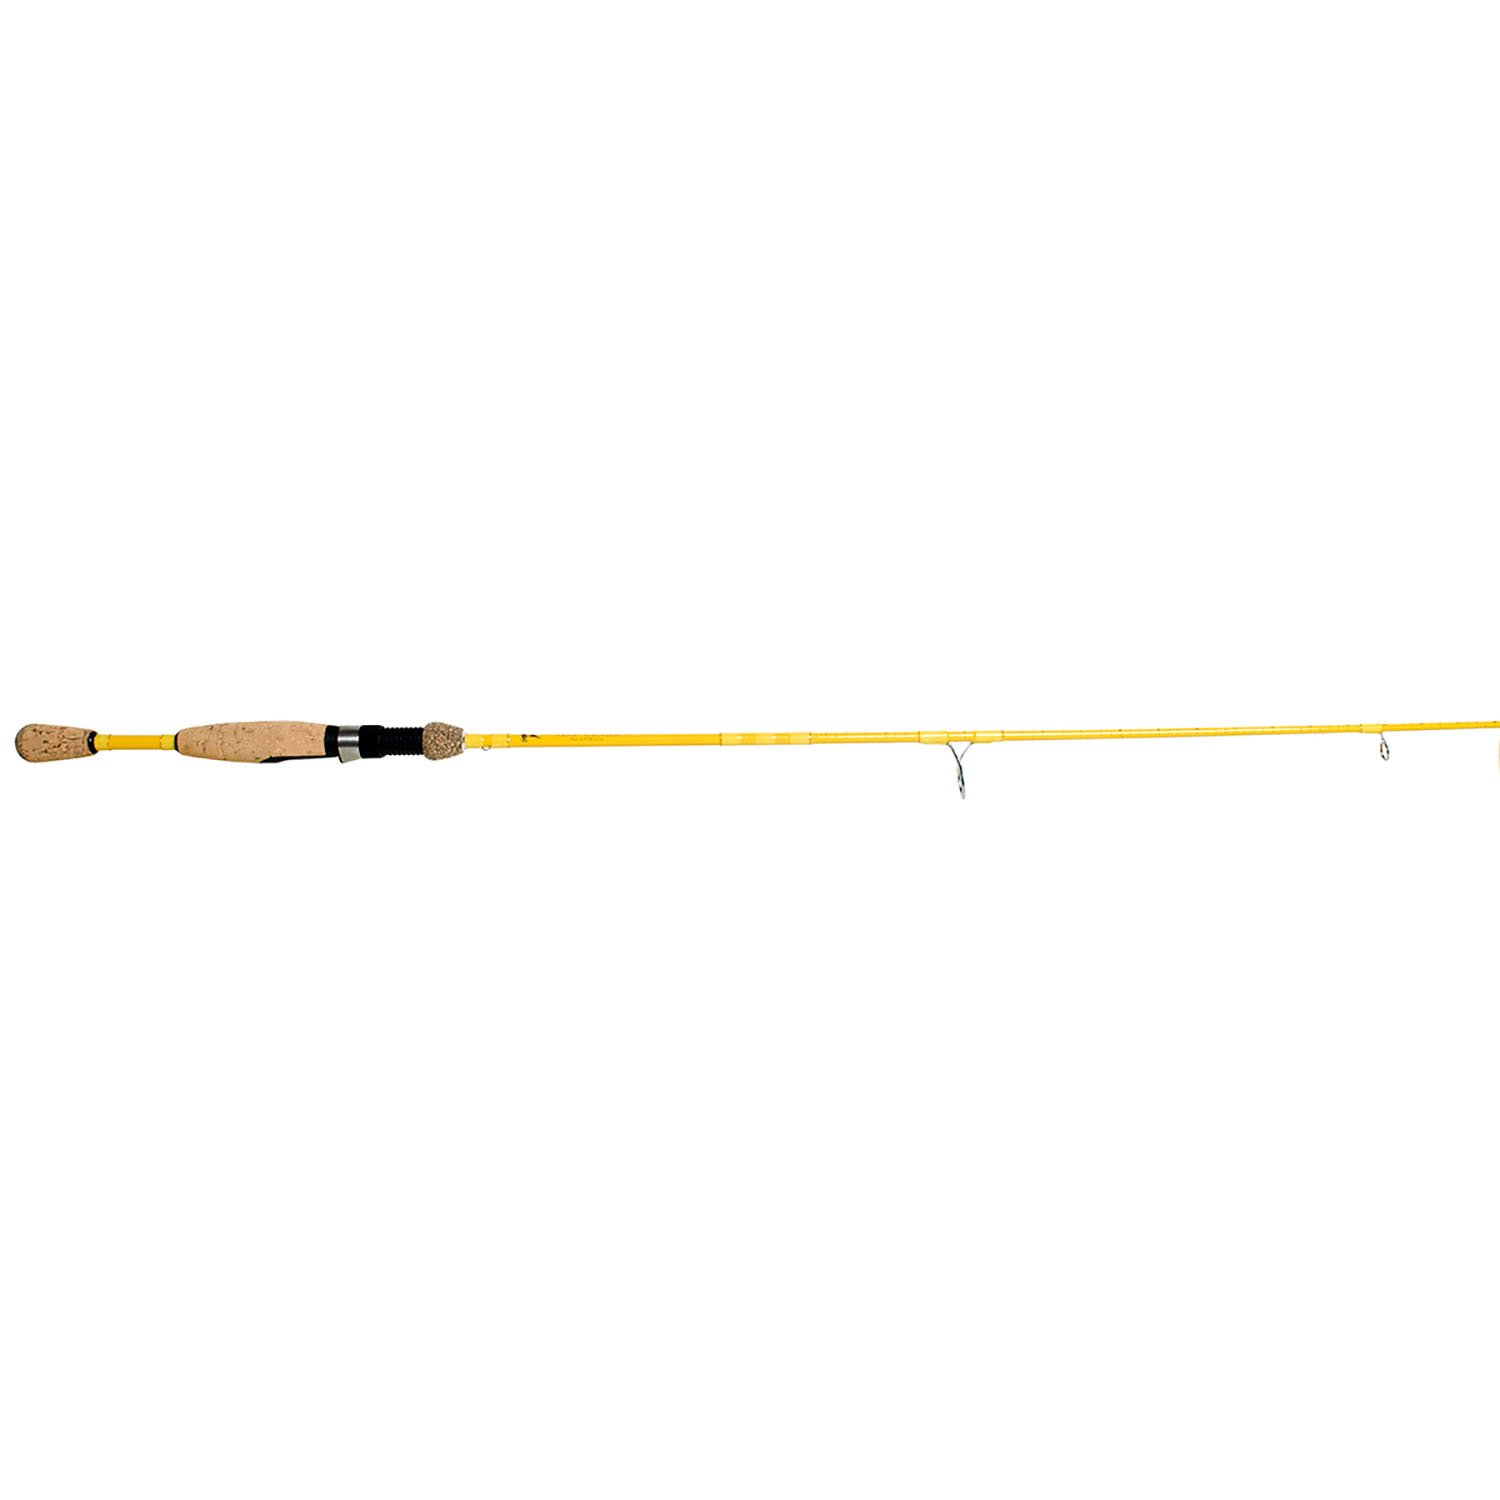 Eagle Claw Featherlight Spinning Rod, 2 Piece Ultra Light Yellow, 5-Feet 6-Inch